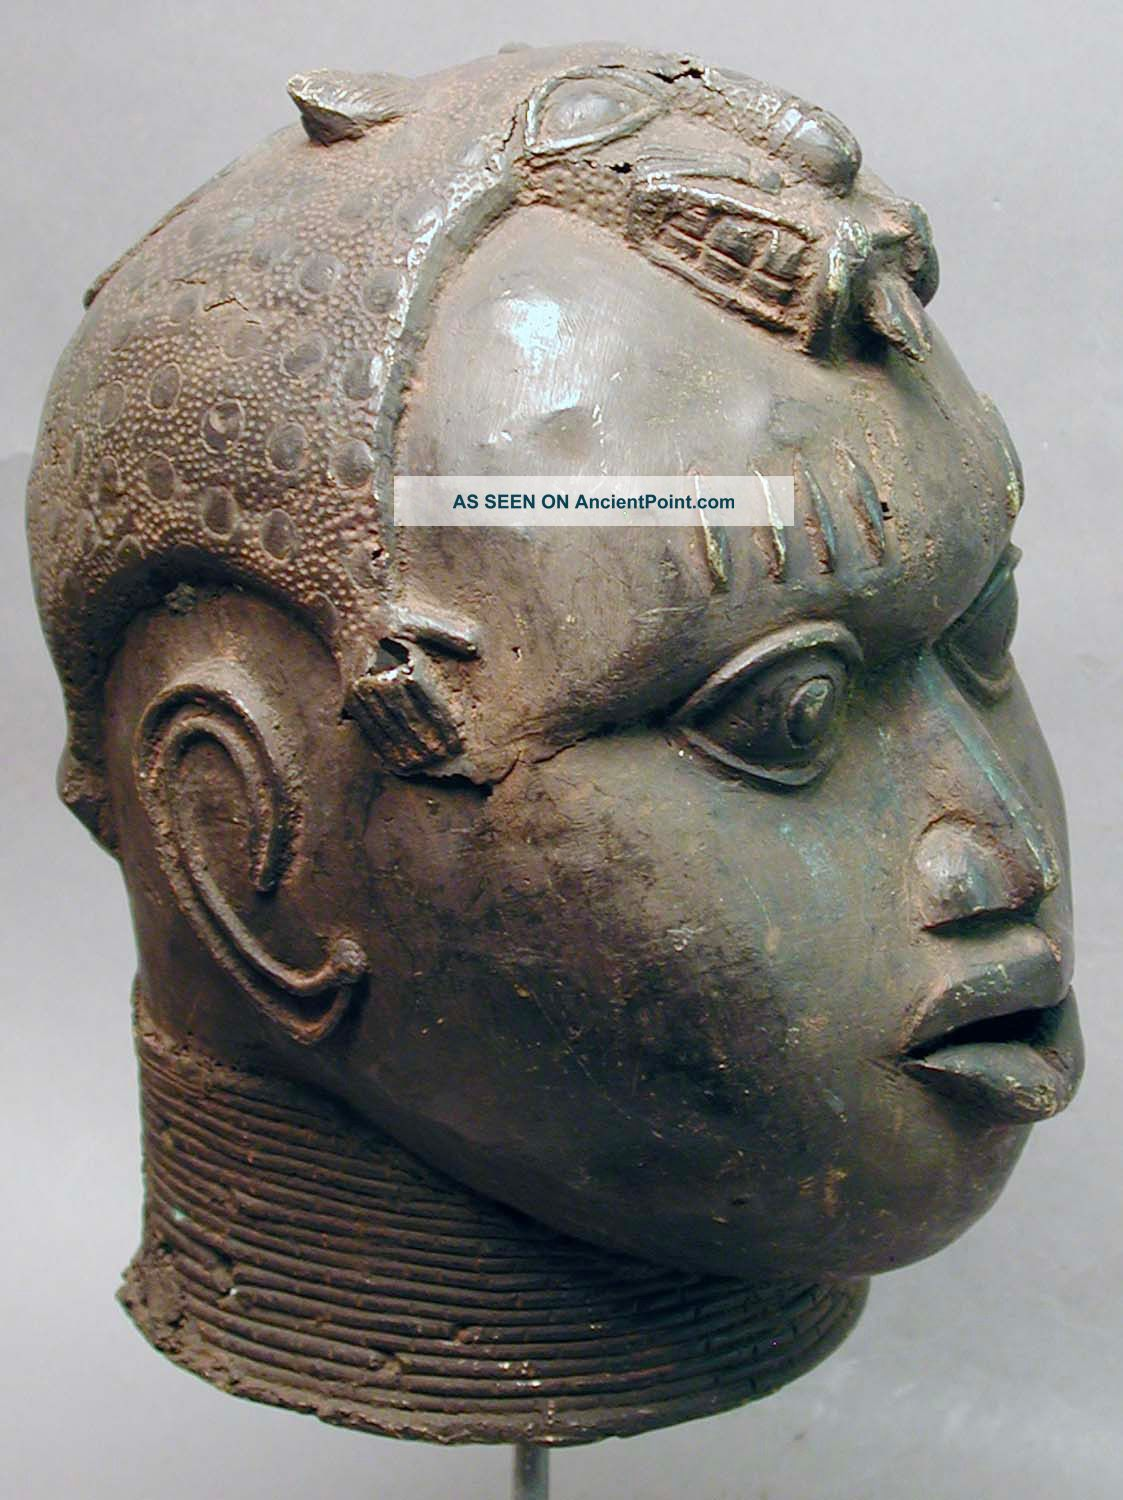 art of benin essay Art of benin essay art of benin essay - title ebooks : art of benin essay - category : kindle and ebooks pdf - author : ~ unidentified - isbn785458 - file type :.